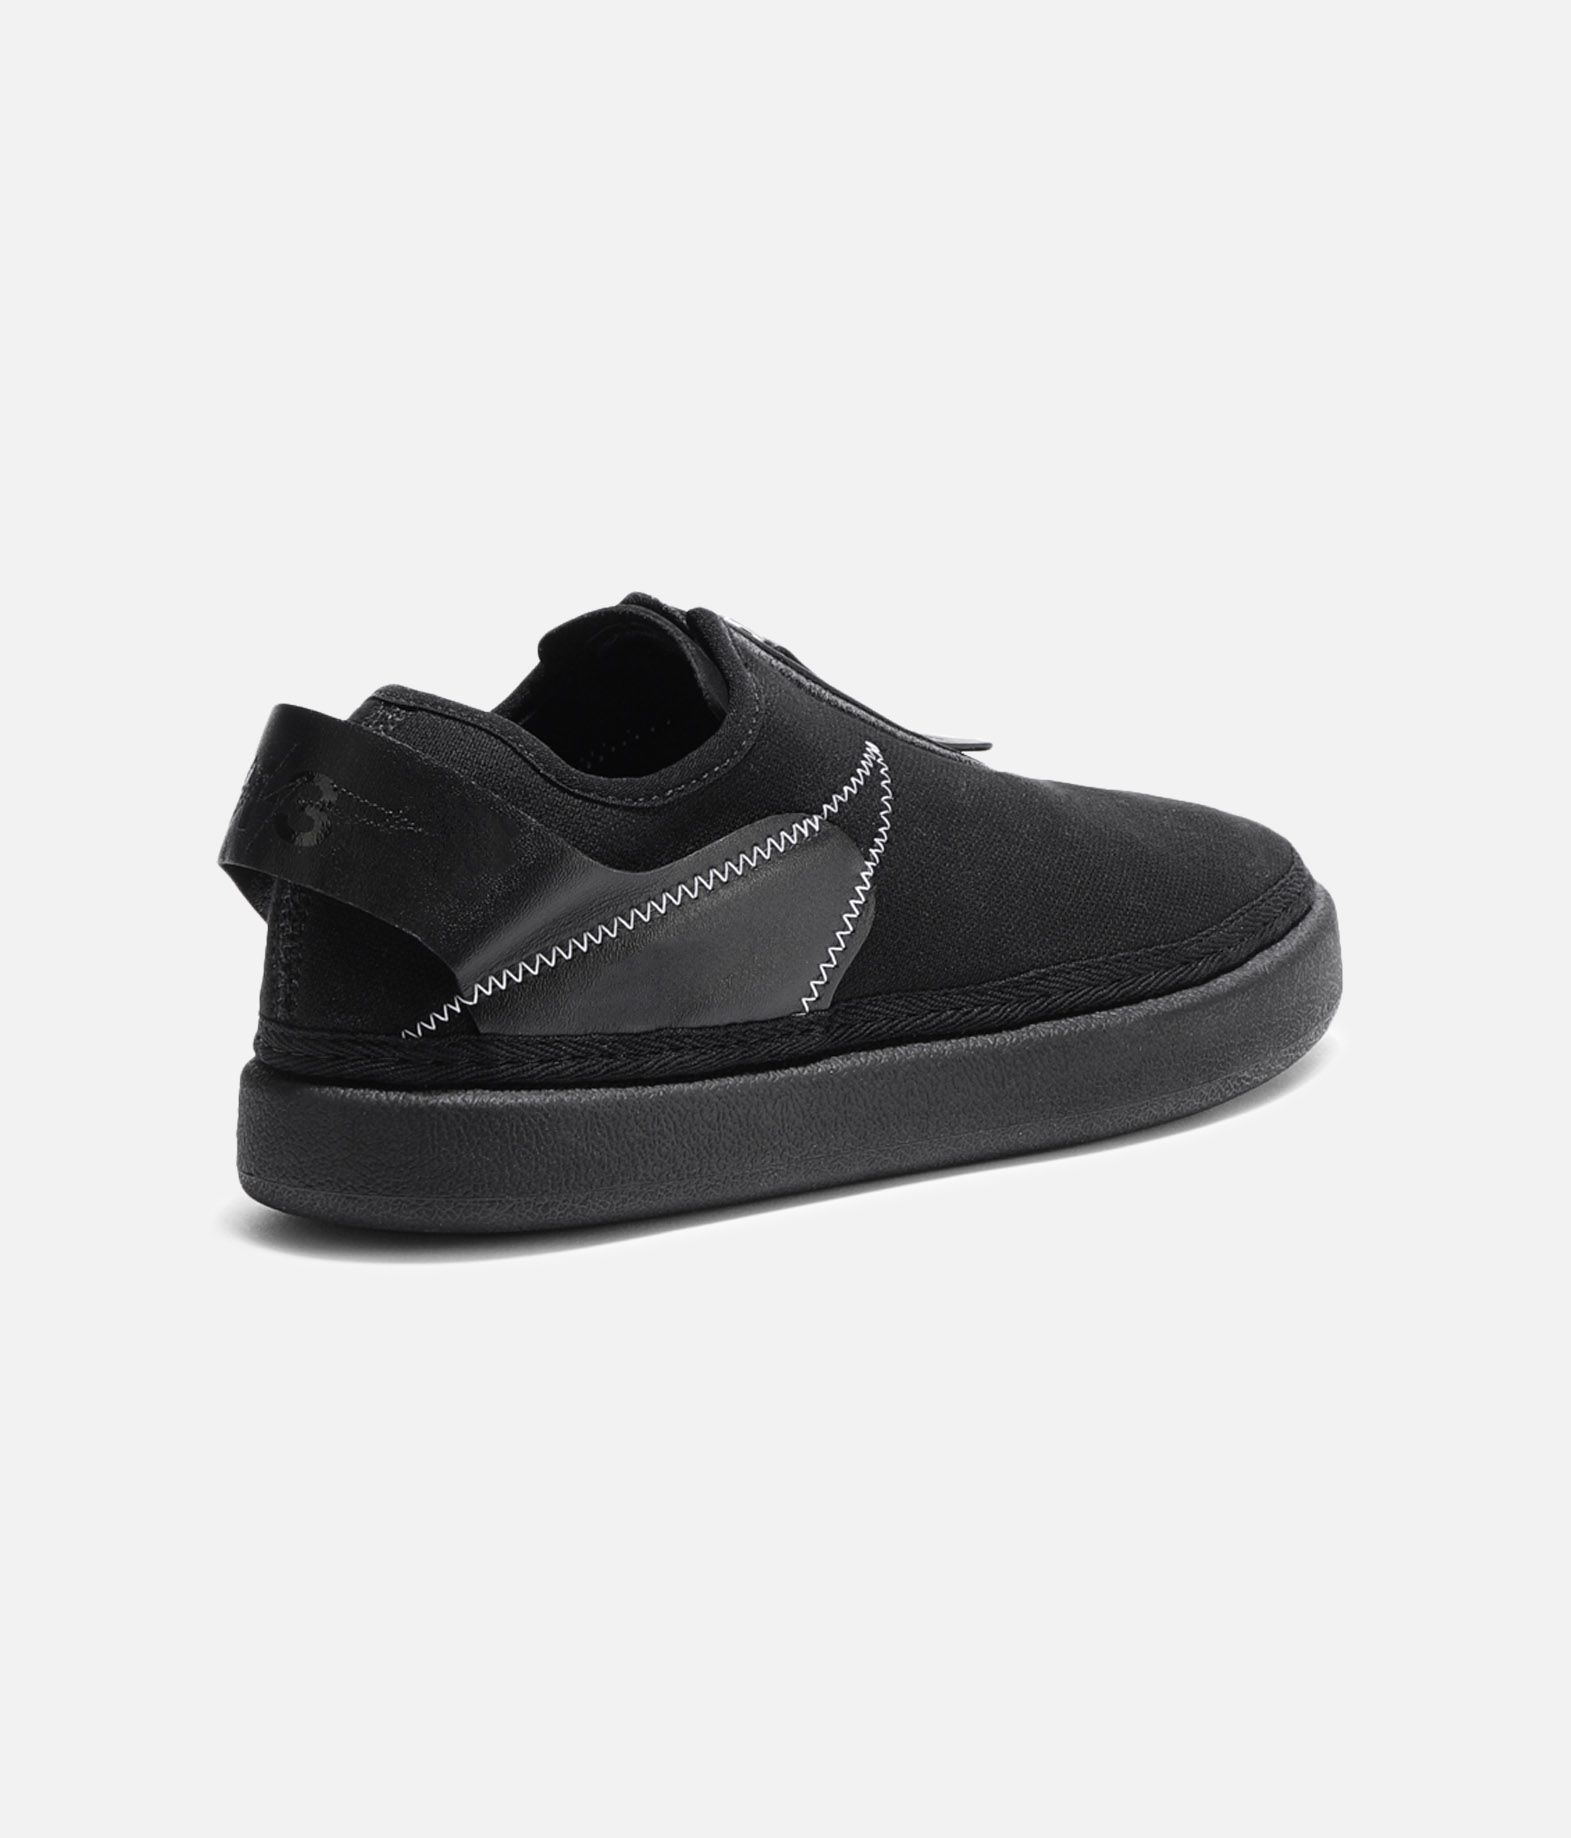 Y-3 Y-3 Comfort Zip High-top sneakers Woman d